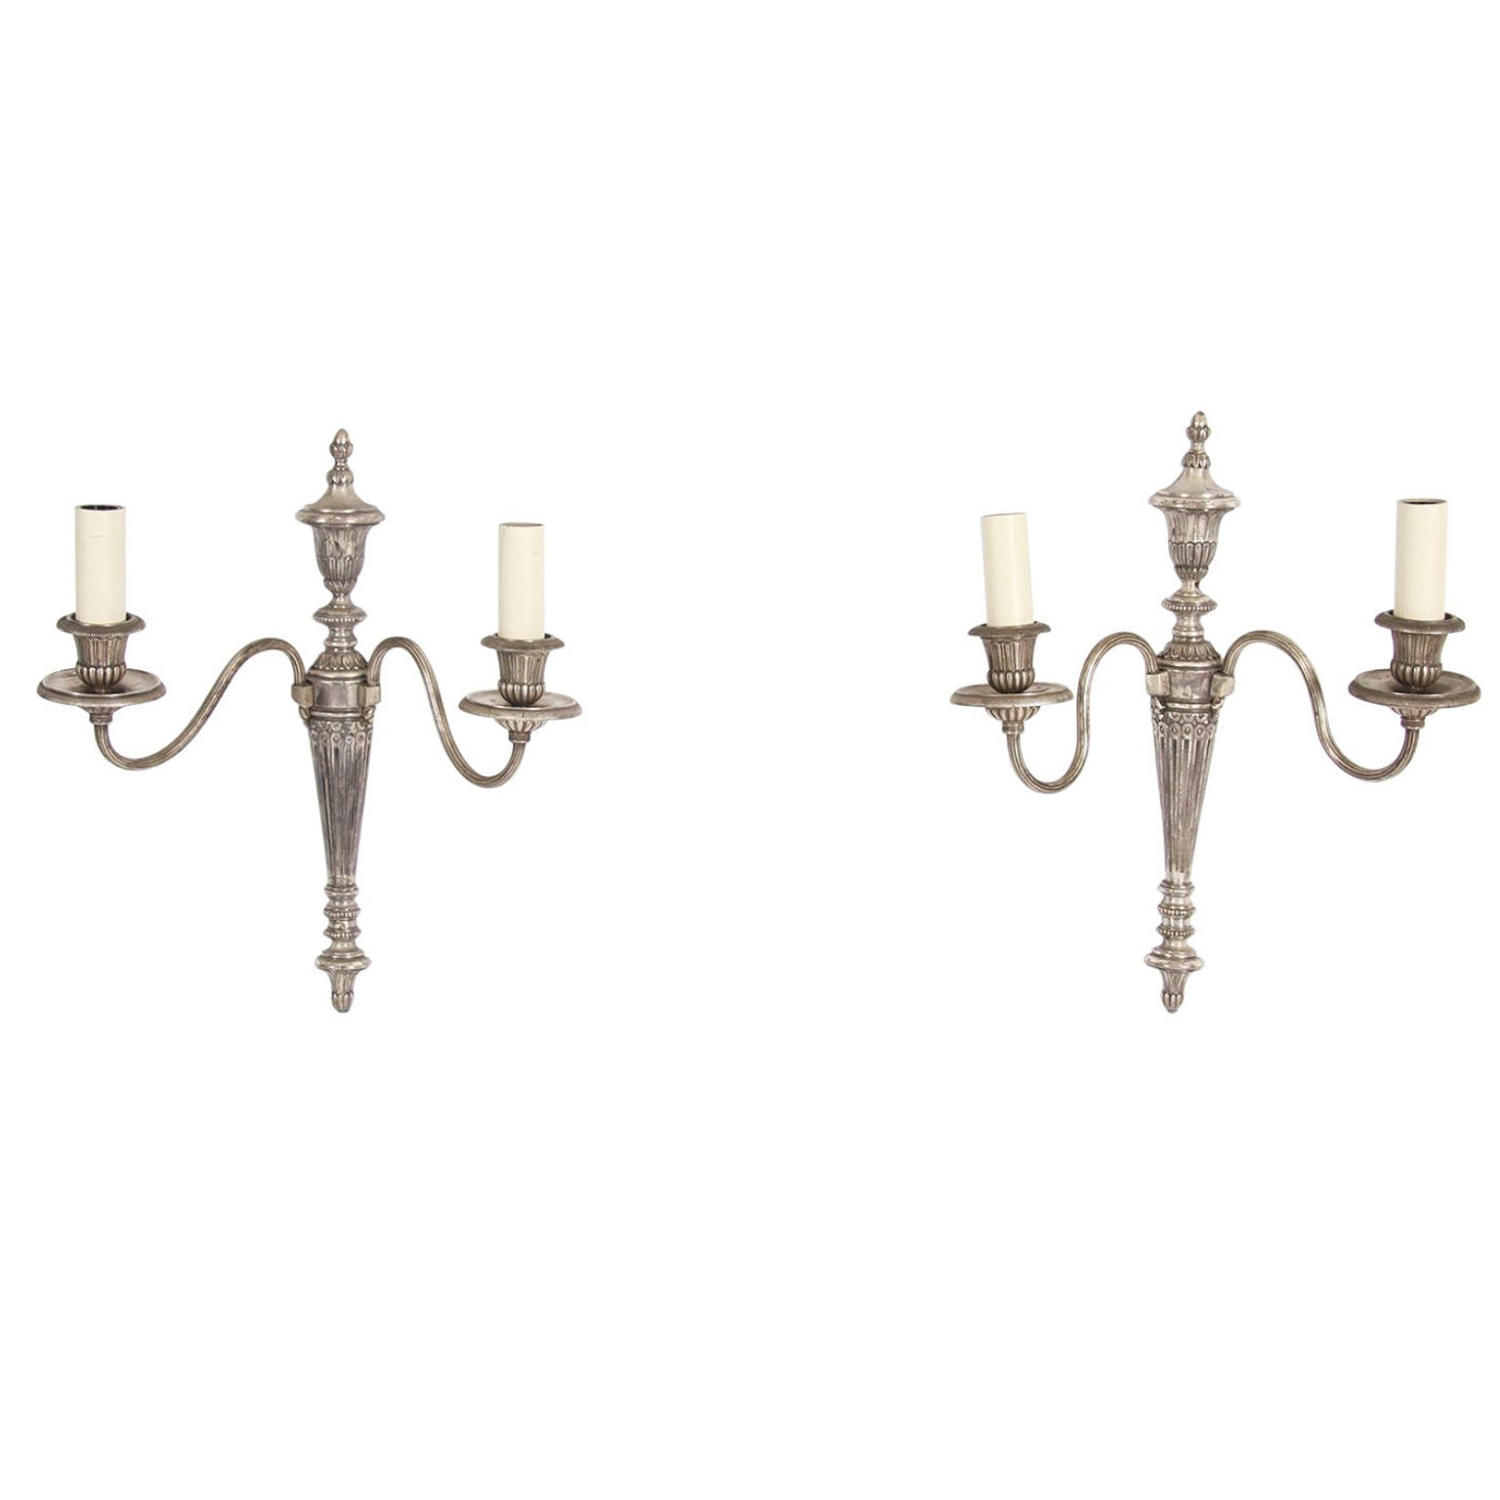 Pair of Silver Plated Wall Sconces